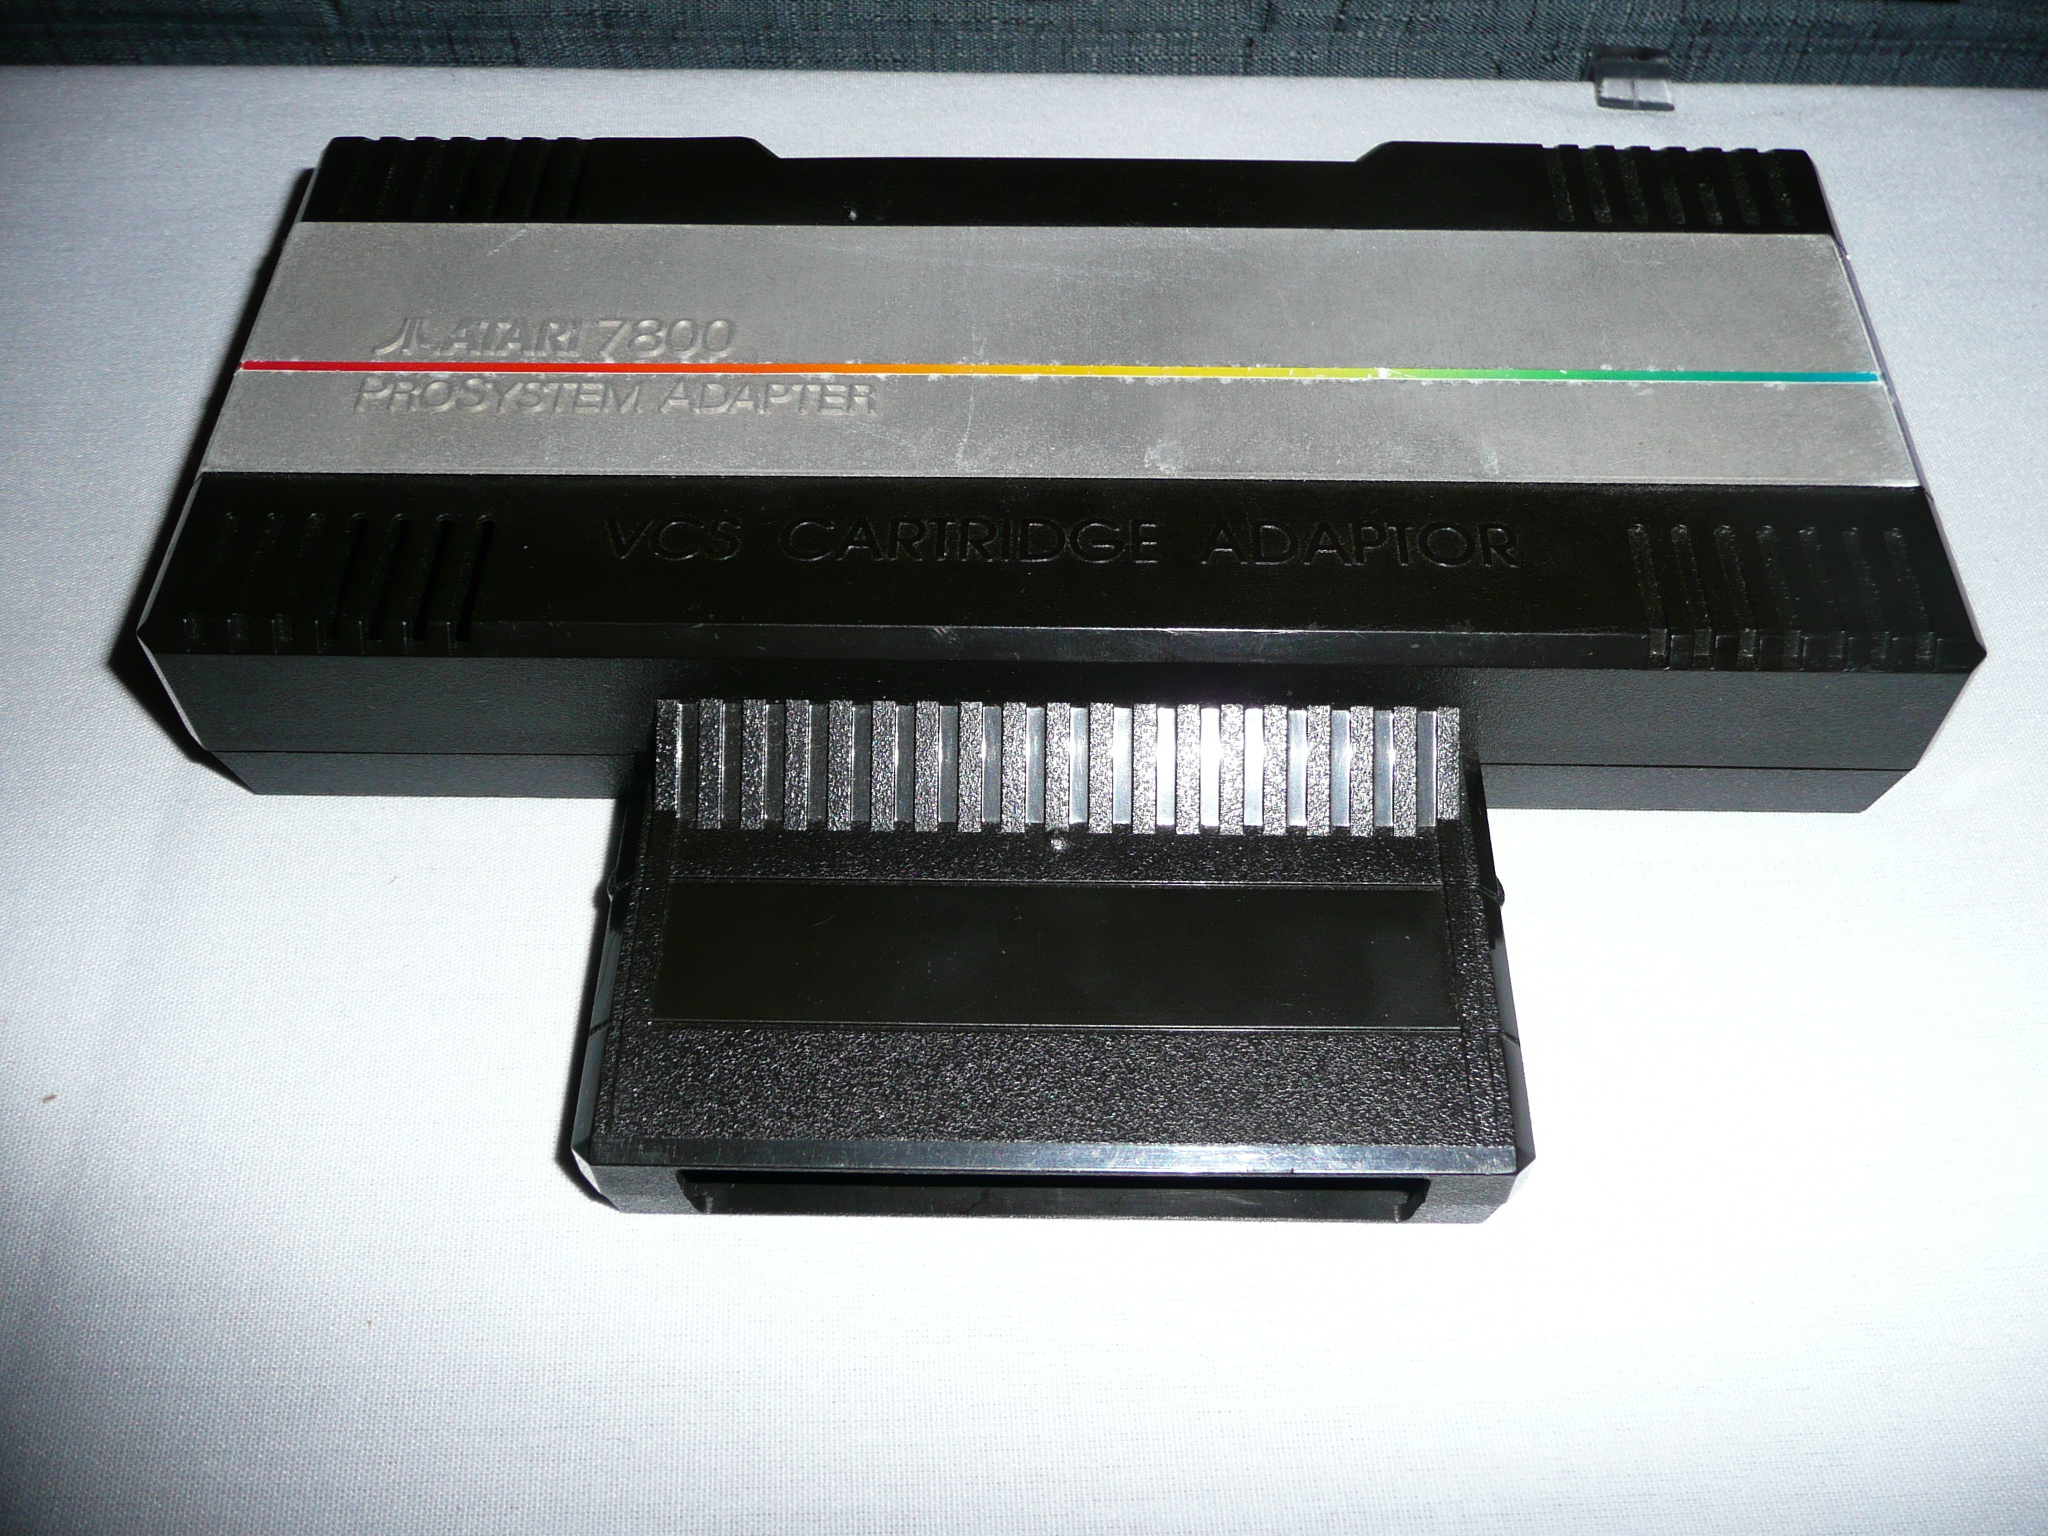 Atari 7800 adaptor for Atari 5200 at PAX-East - Atari 5200 ...